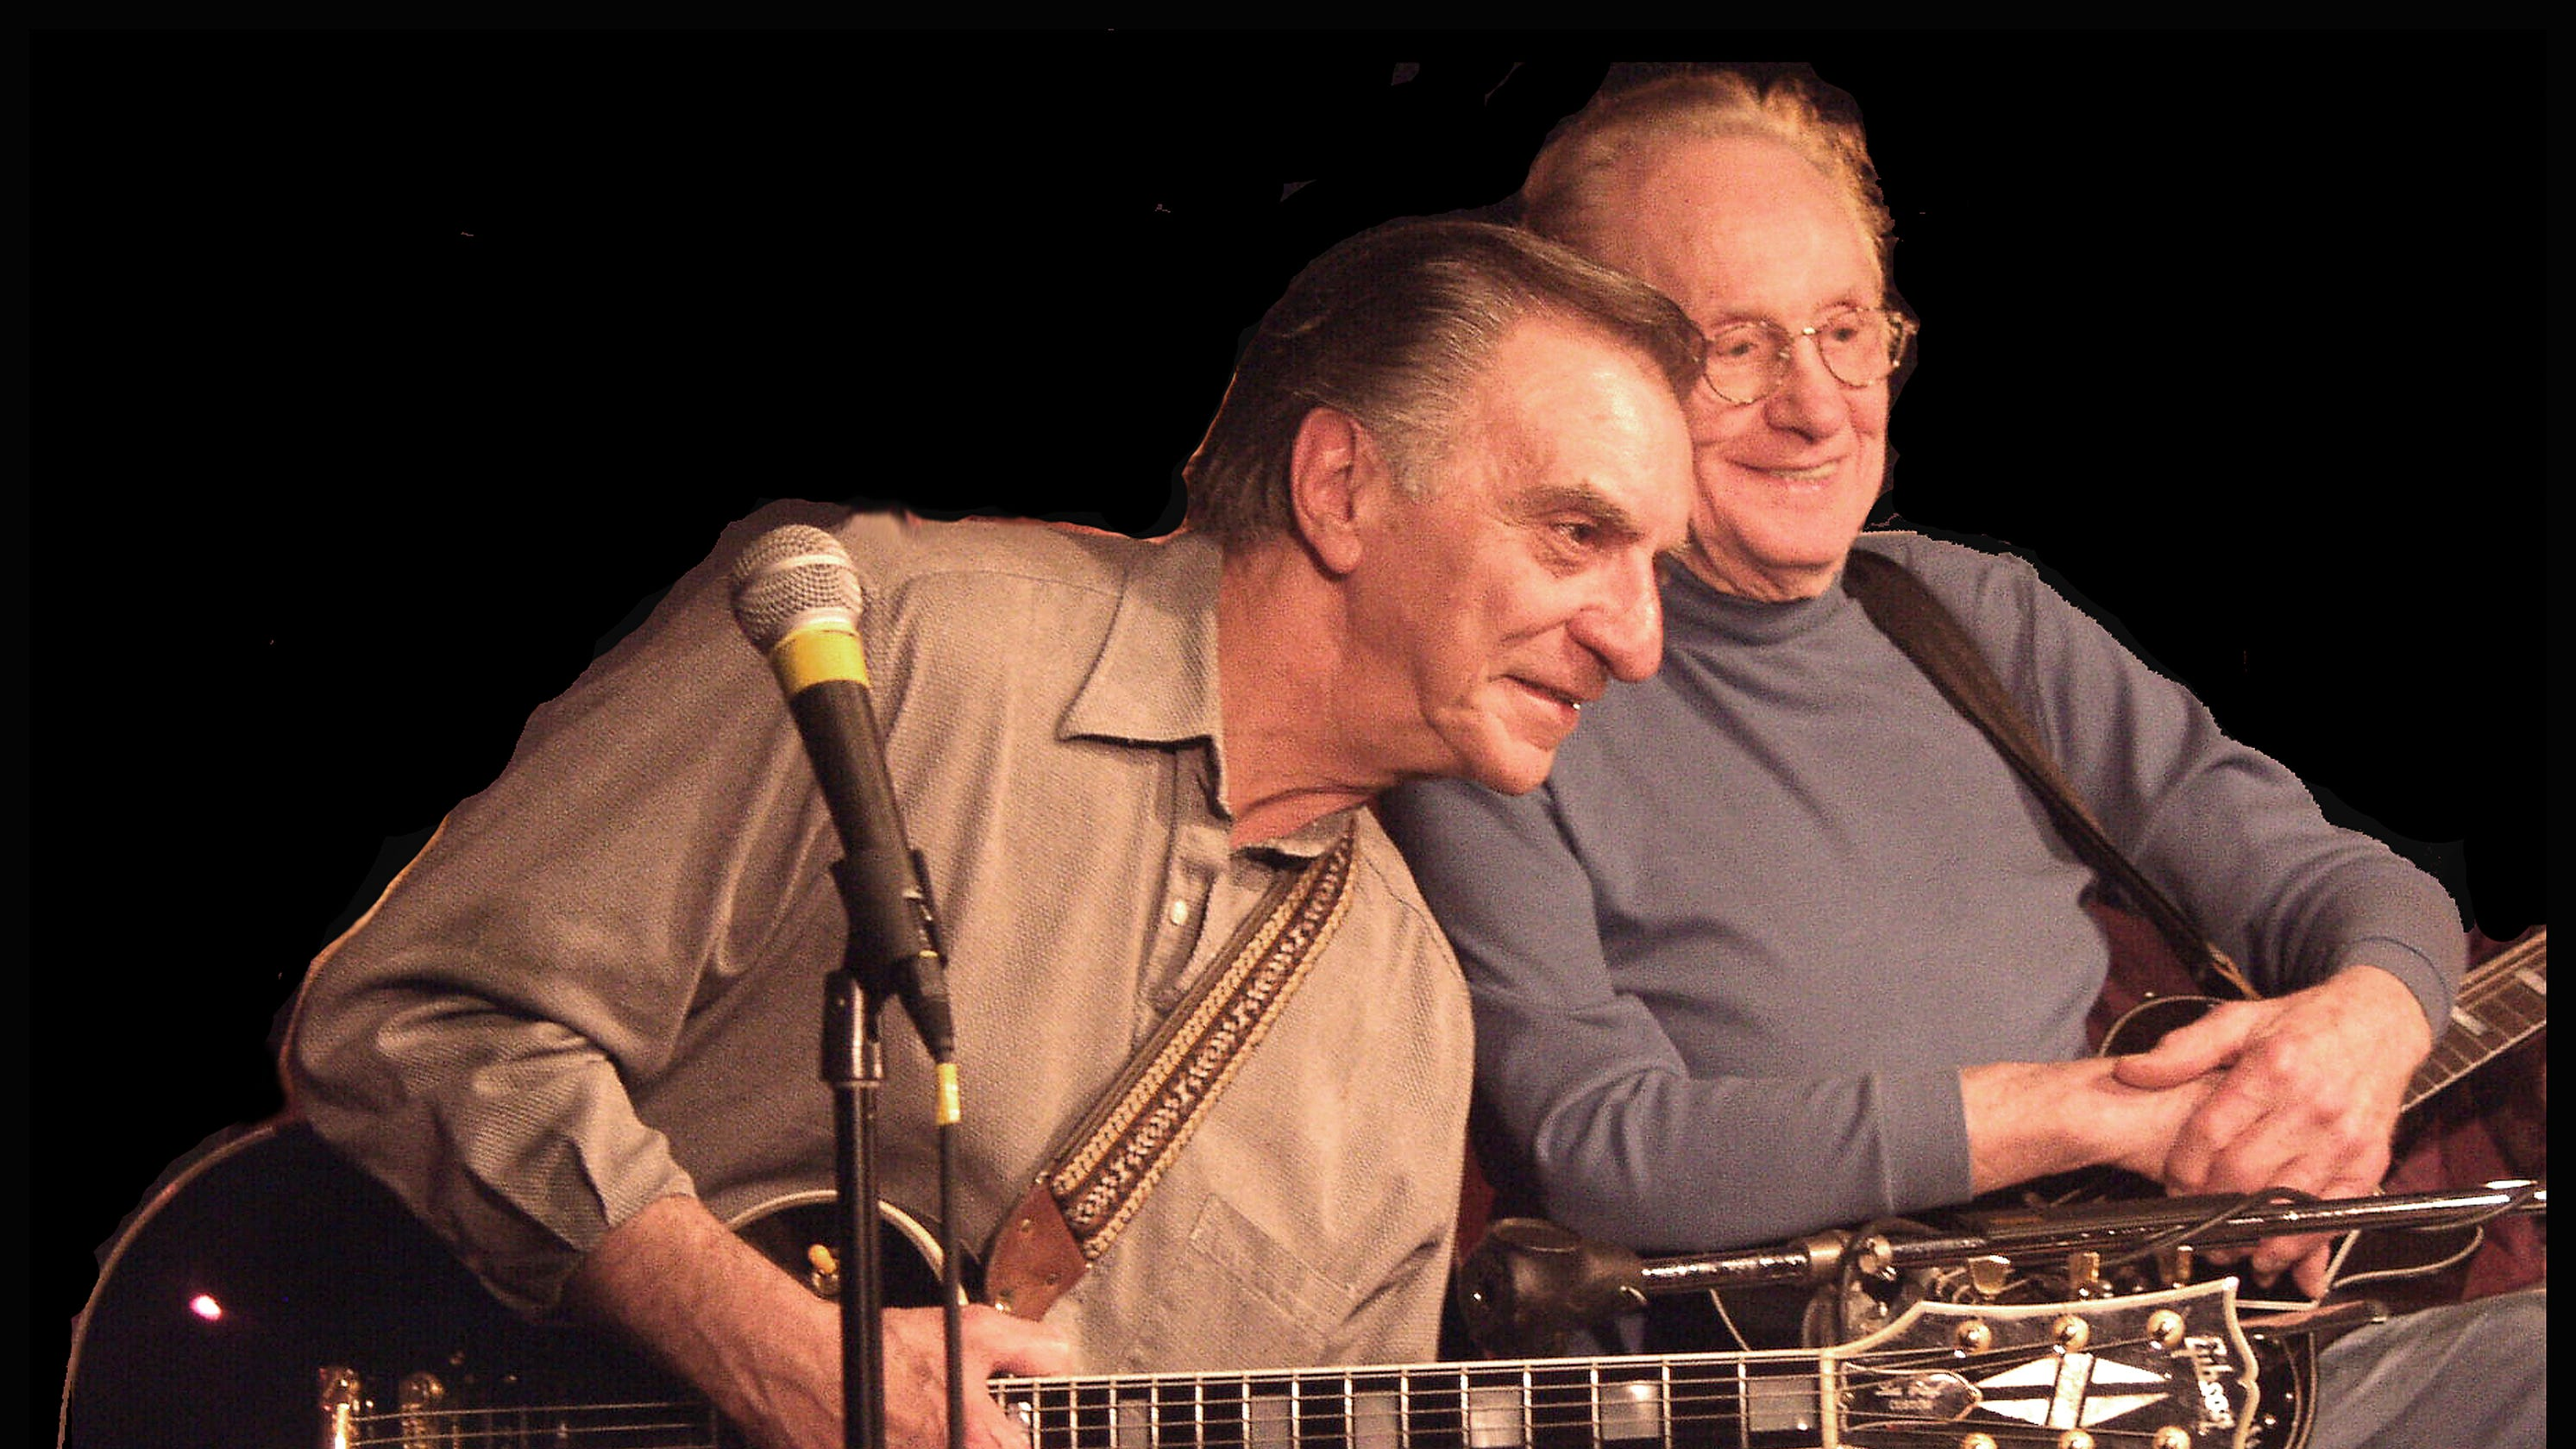 NJ guitarist Lou Pallo, member of Les Paul Trio and 'man of a million chords,' dies at 86